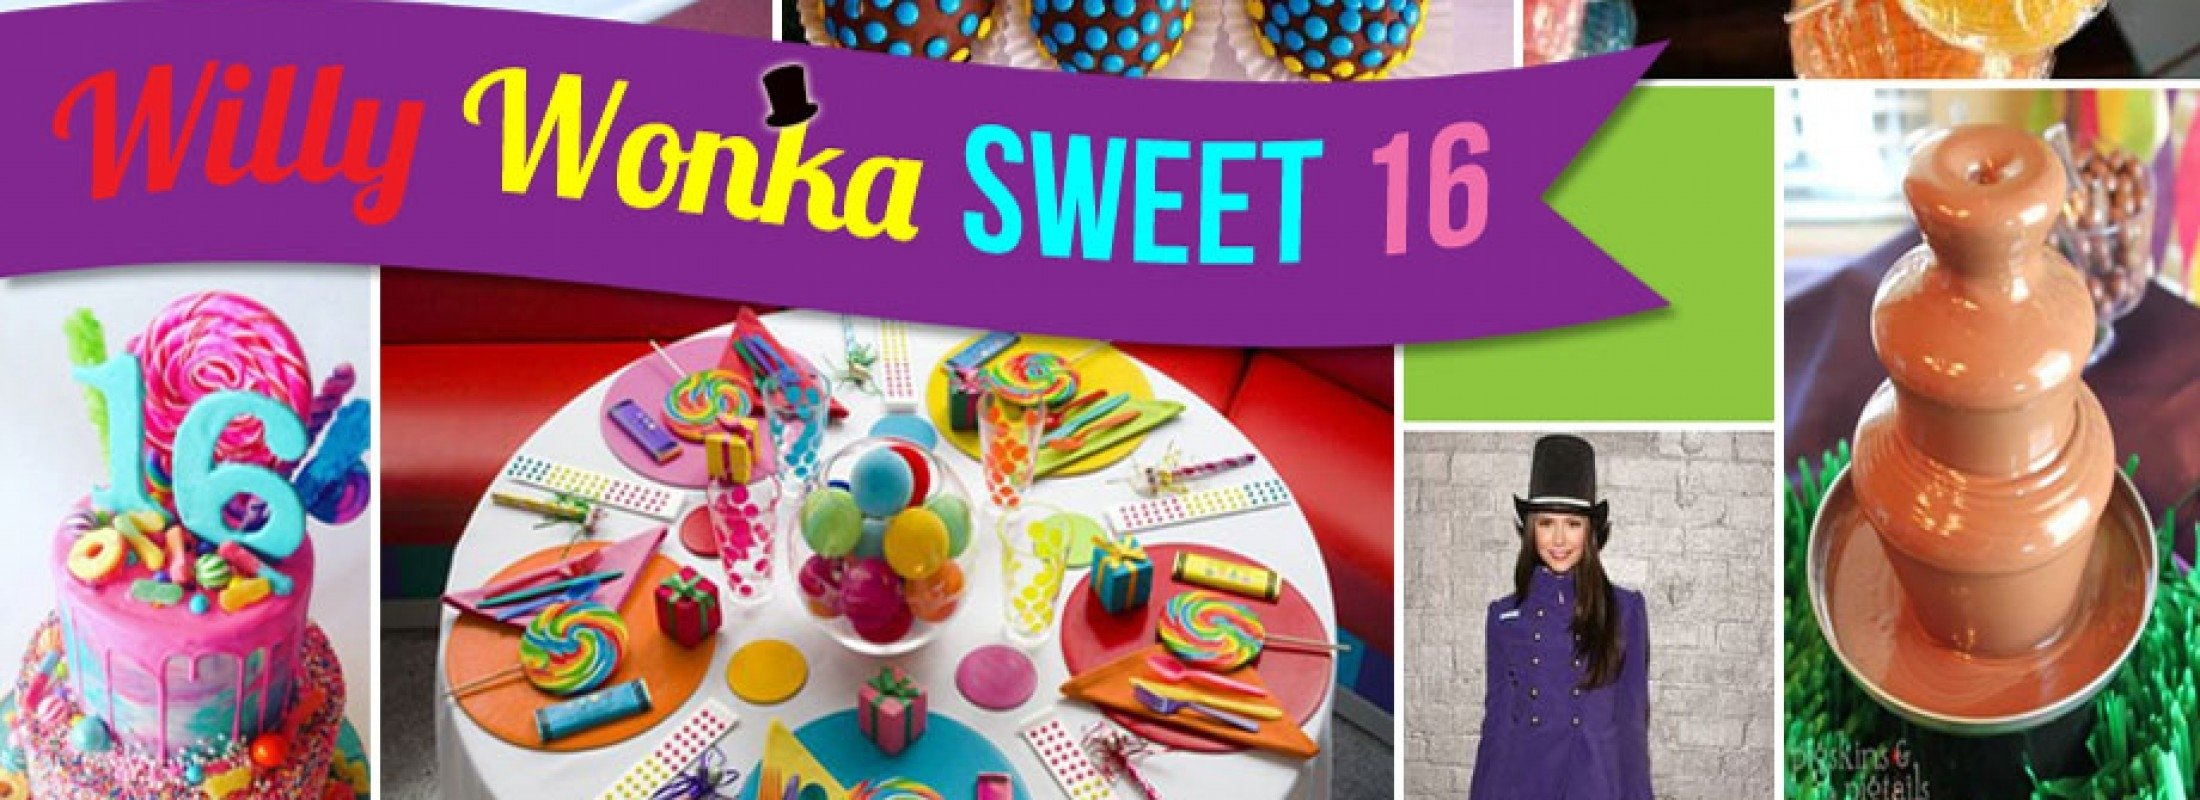 10 Lovely Cool Sweet 16 Party Ideas willy wonka inspired sweet 16 party ideas 2020